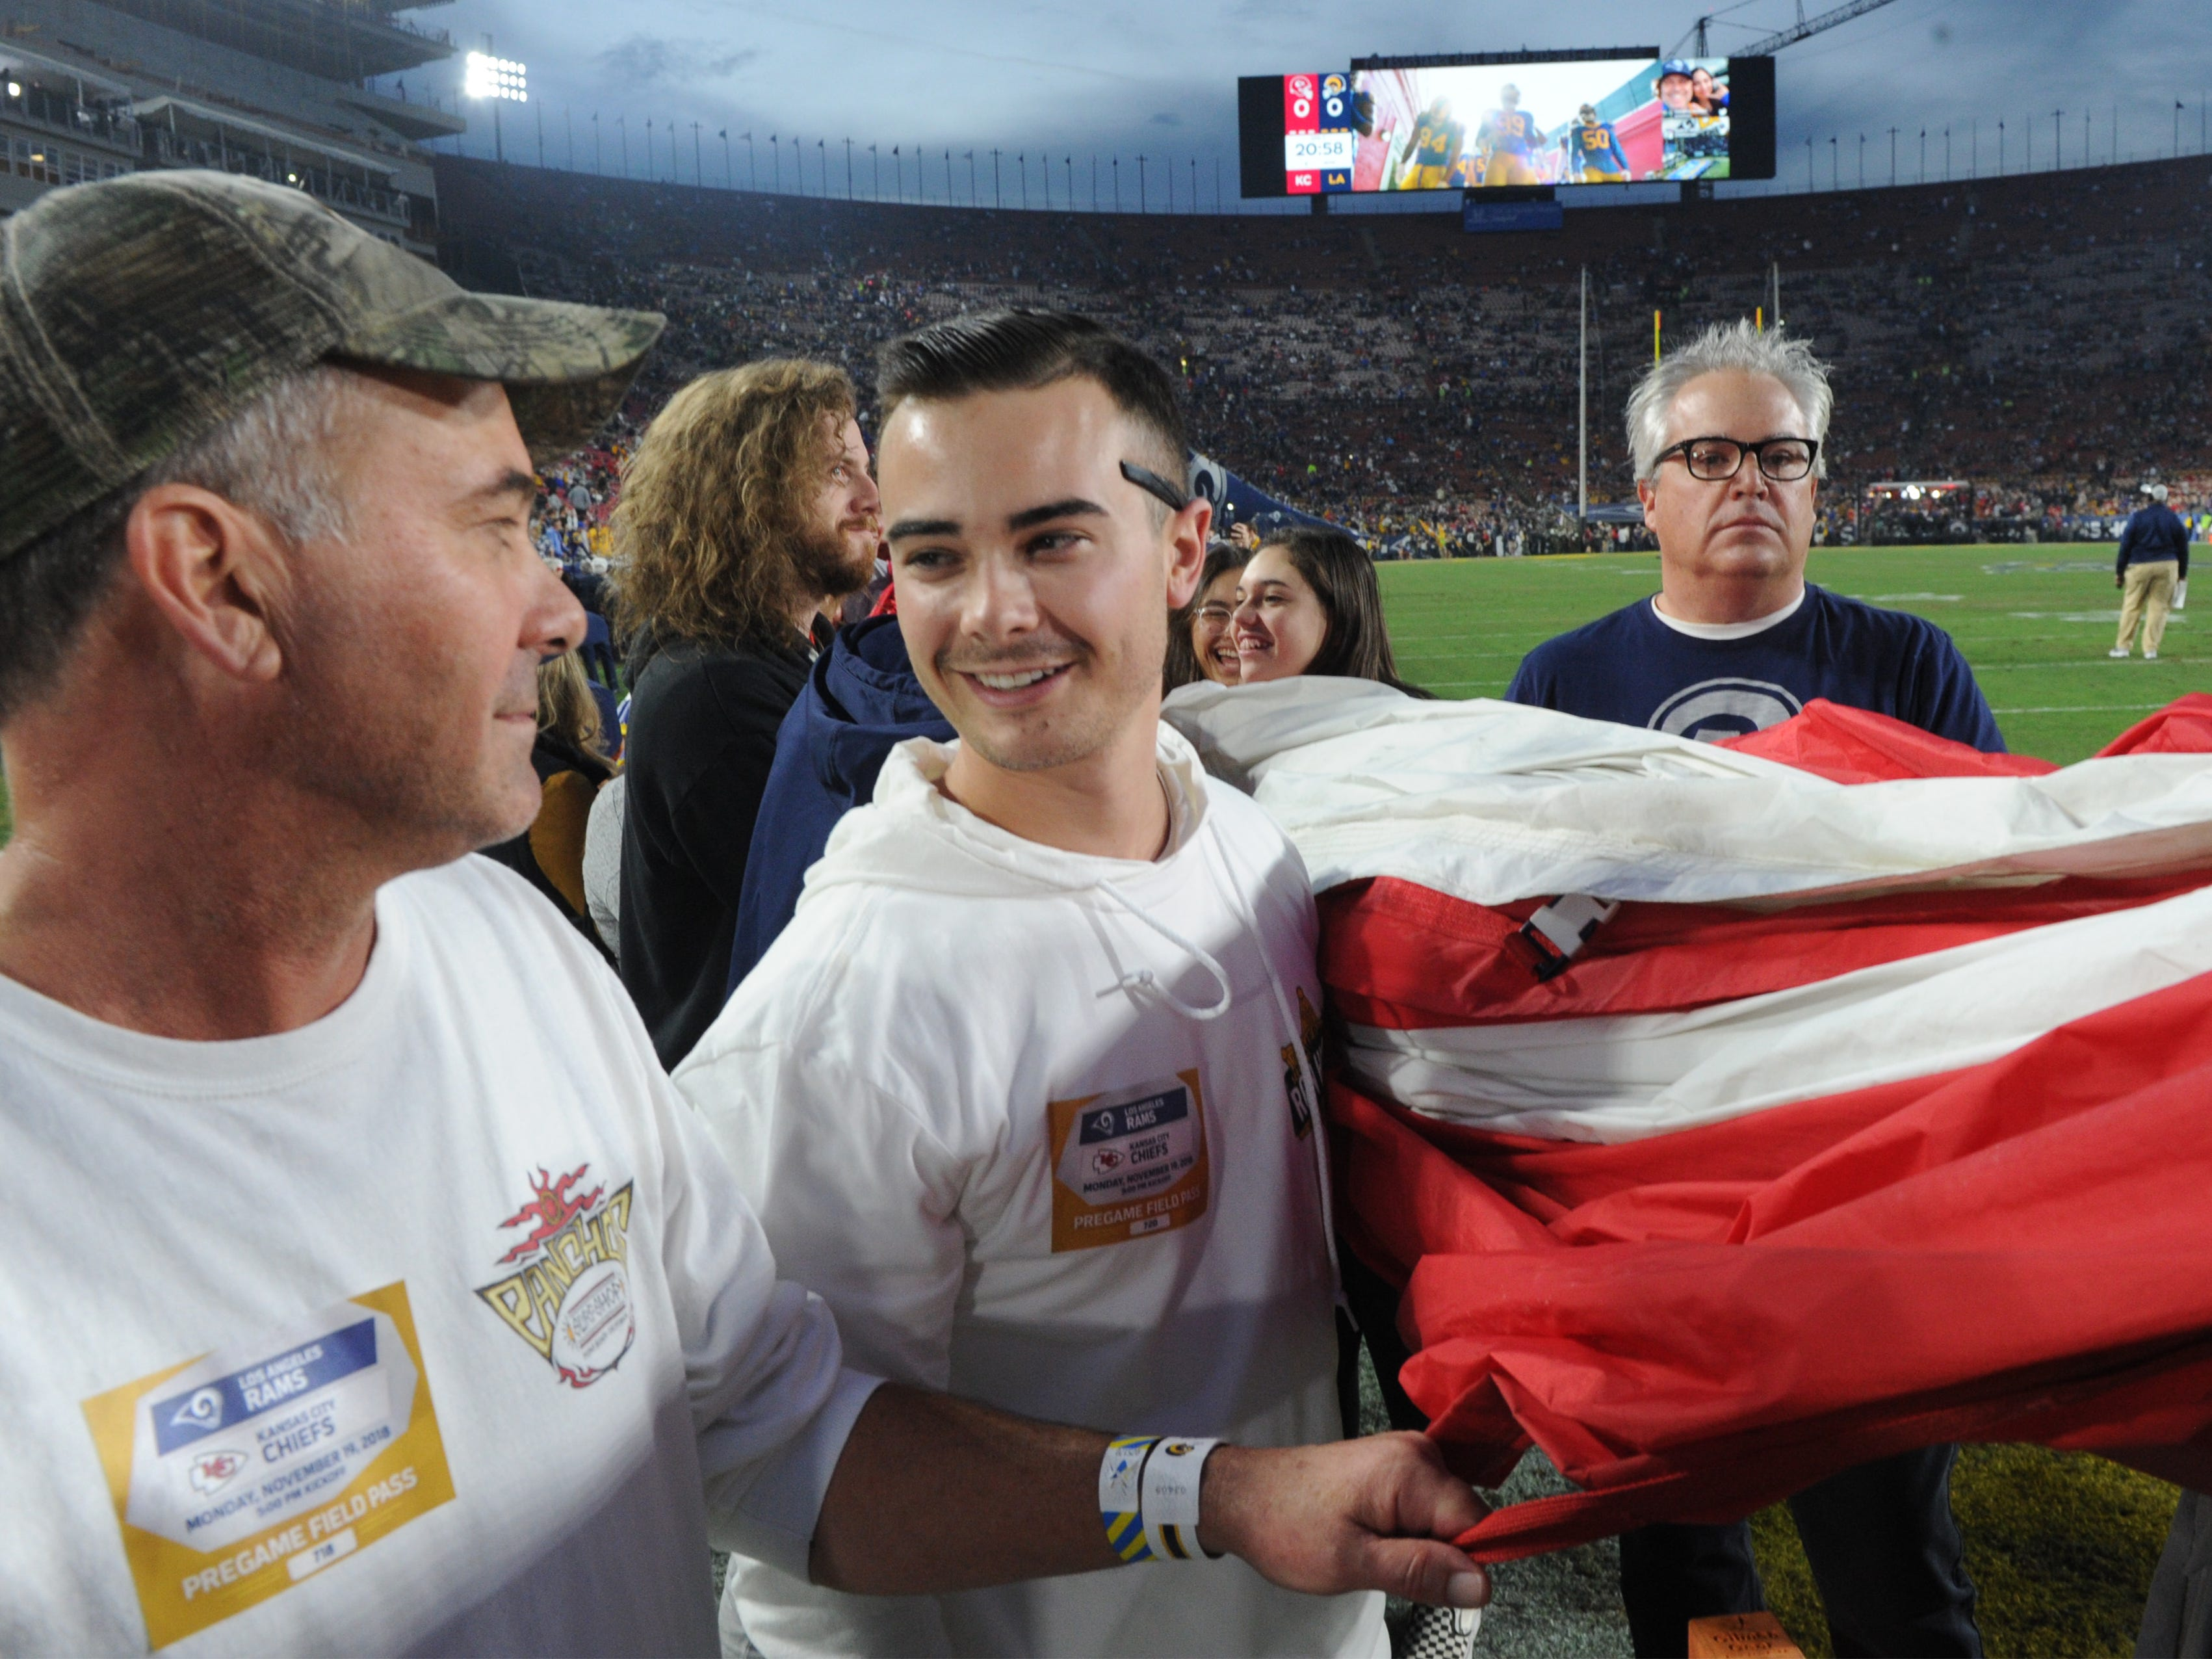 Richard Hain, left, and his son J.T. Hain, who was inside the Borderline Bar & Grill at the time of the mass shooting, participate in the American flag ceremony before Monday night's game between the Rams and Chiefs at the Coliseum.